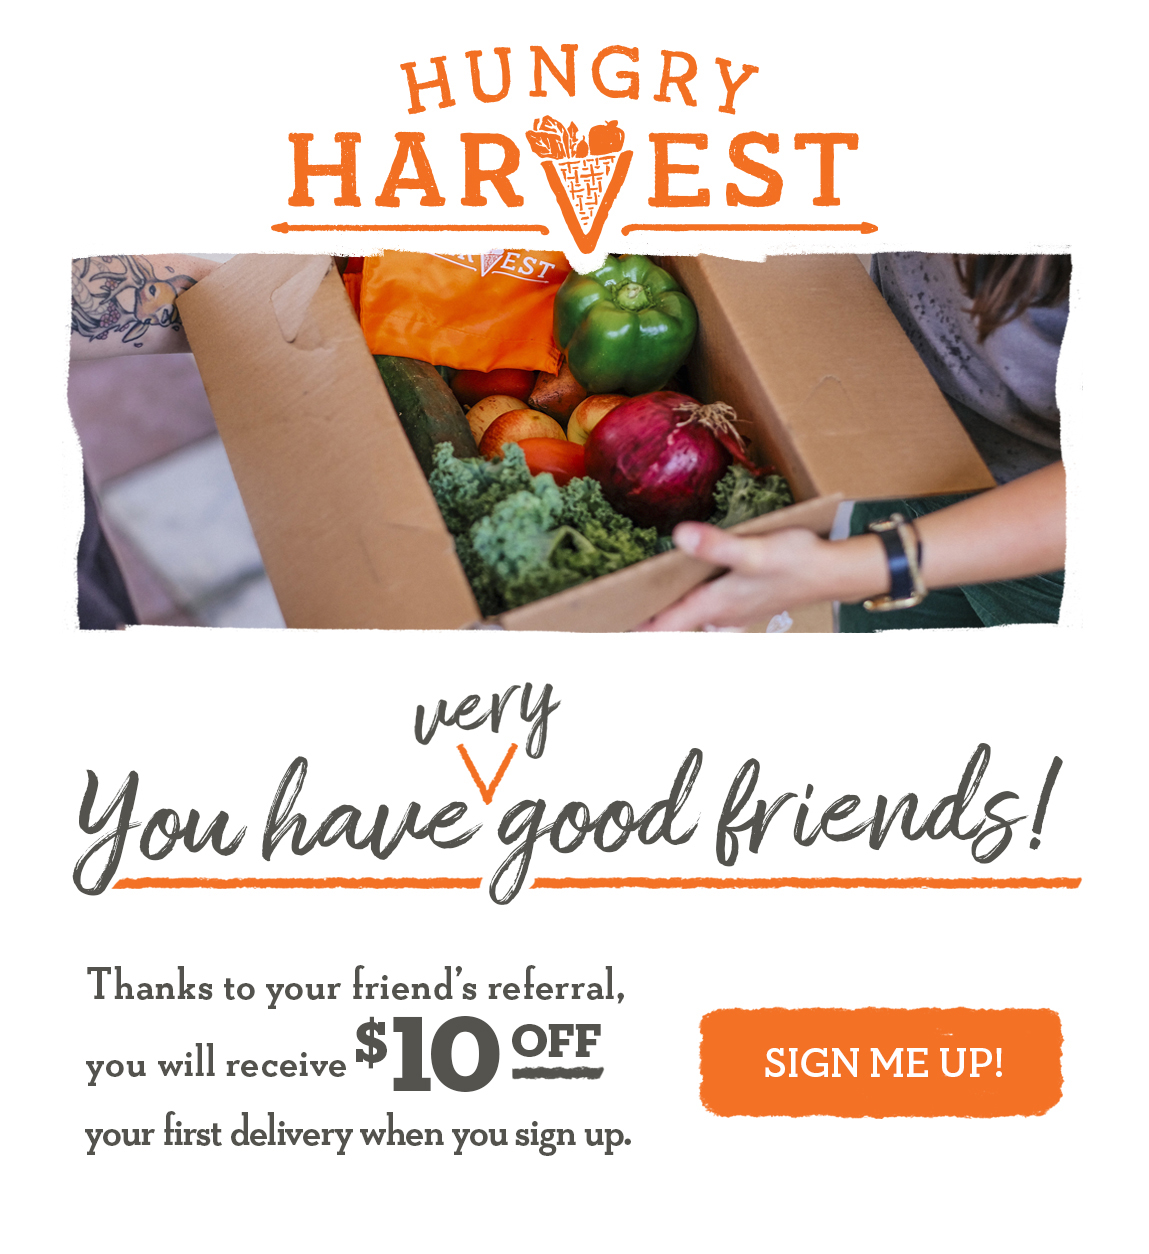 Receive $10 credit when a friend uses your referral code!